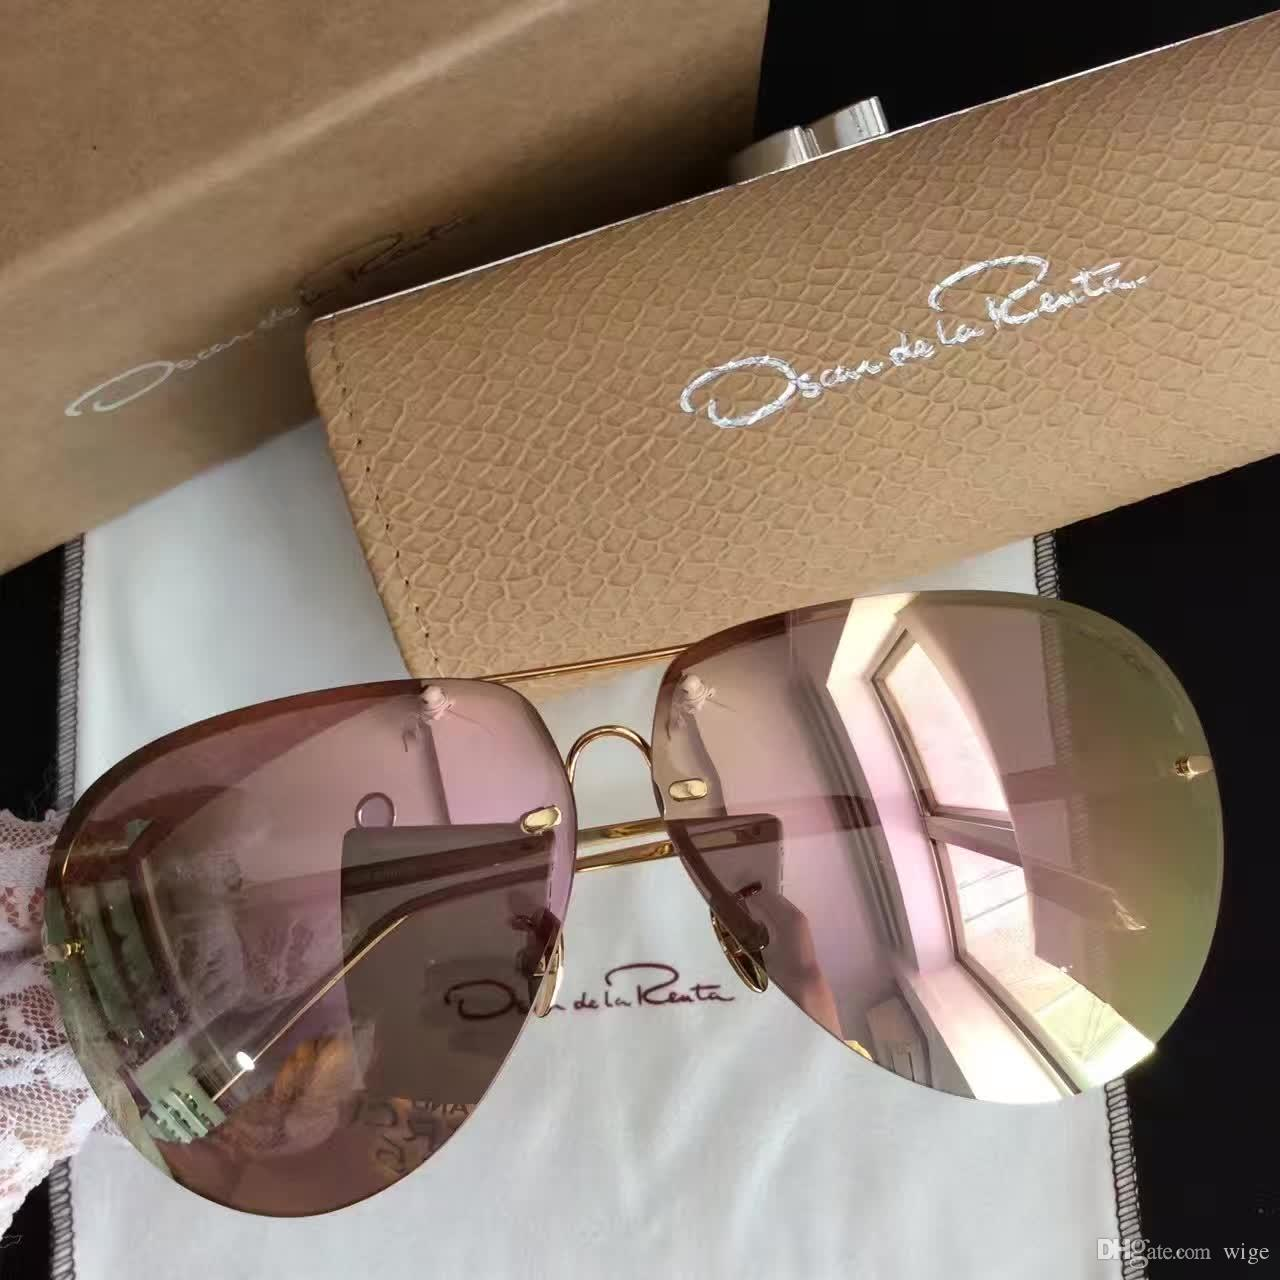 cee3cba9d5a1e 2017 Linda Farrow   Oscar De La Renta Womens Designer Pink Gold Sunglasses  Brand New With Box Cheap Eyeglasses Sunglasses Shop From Wige